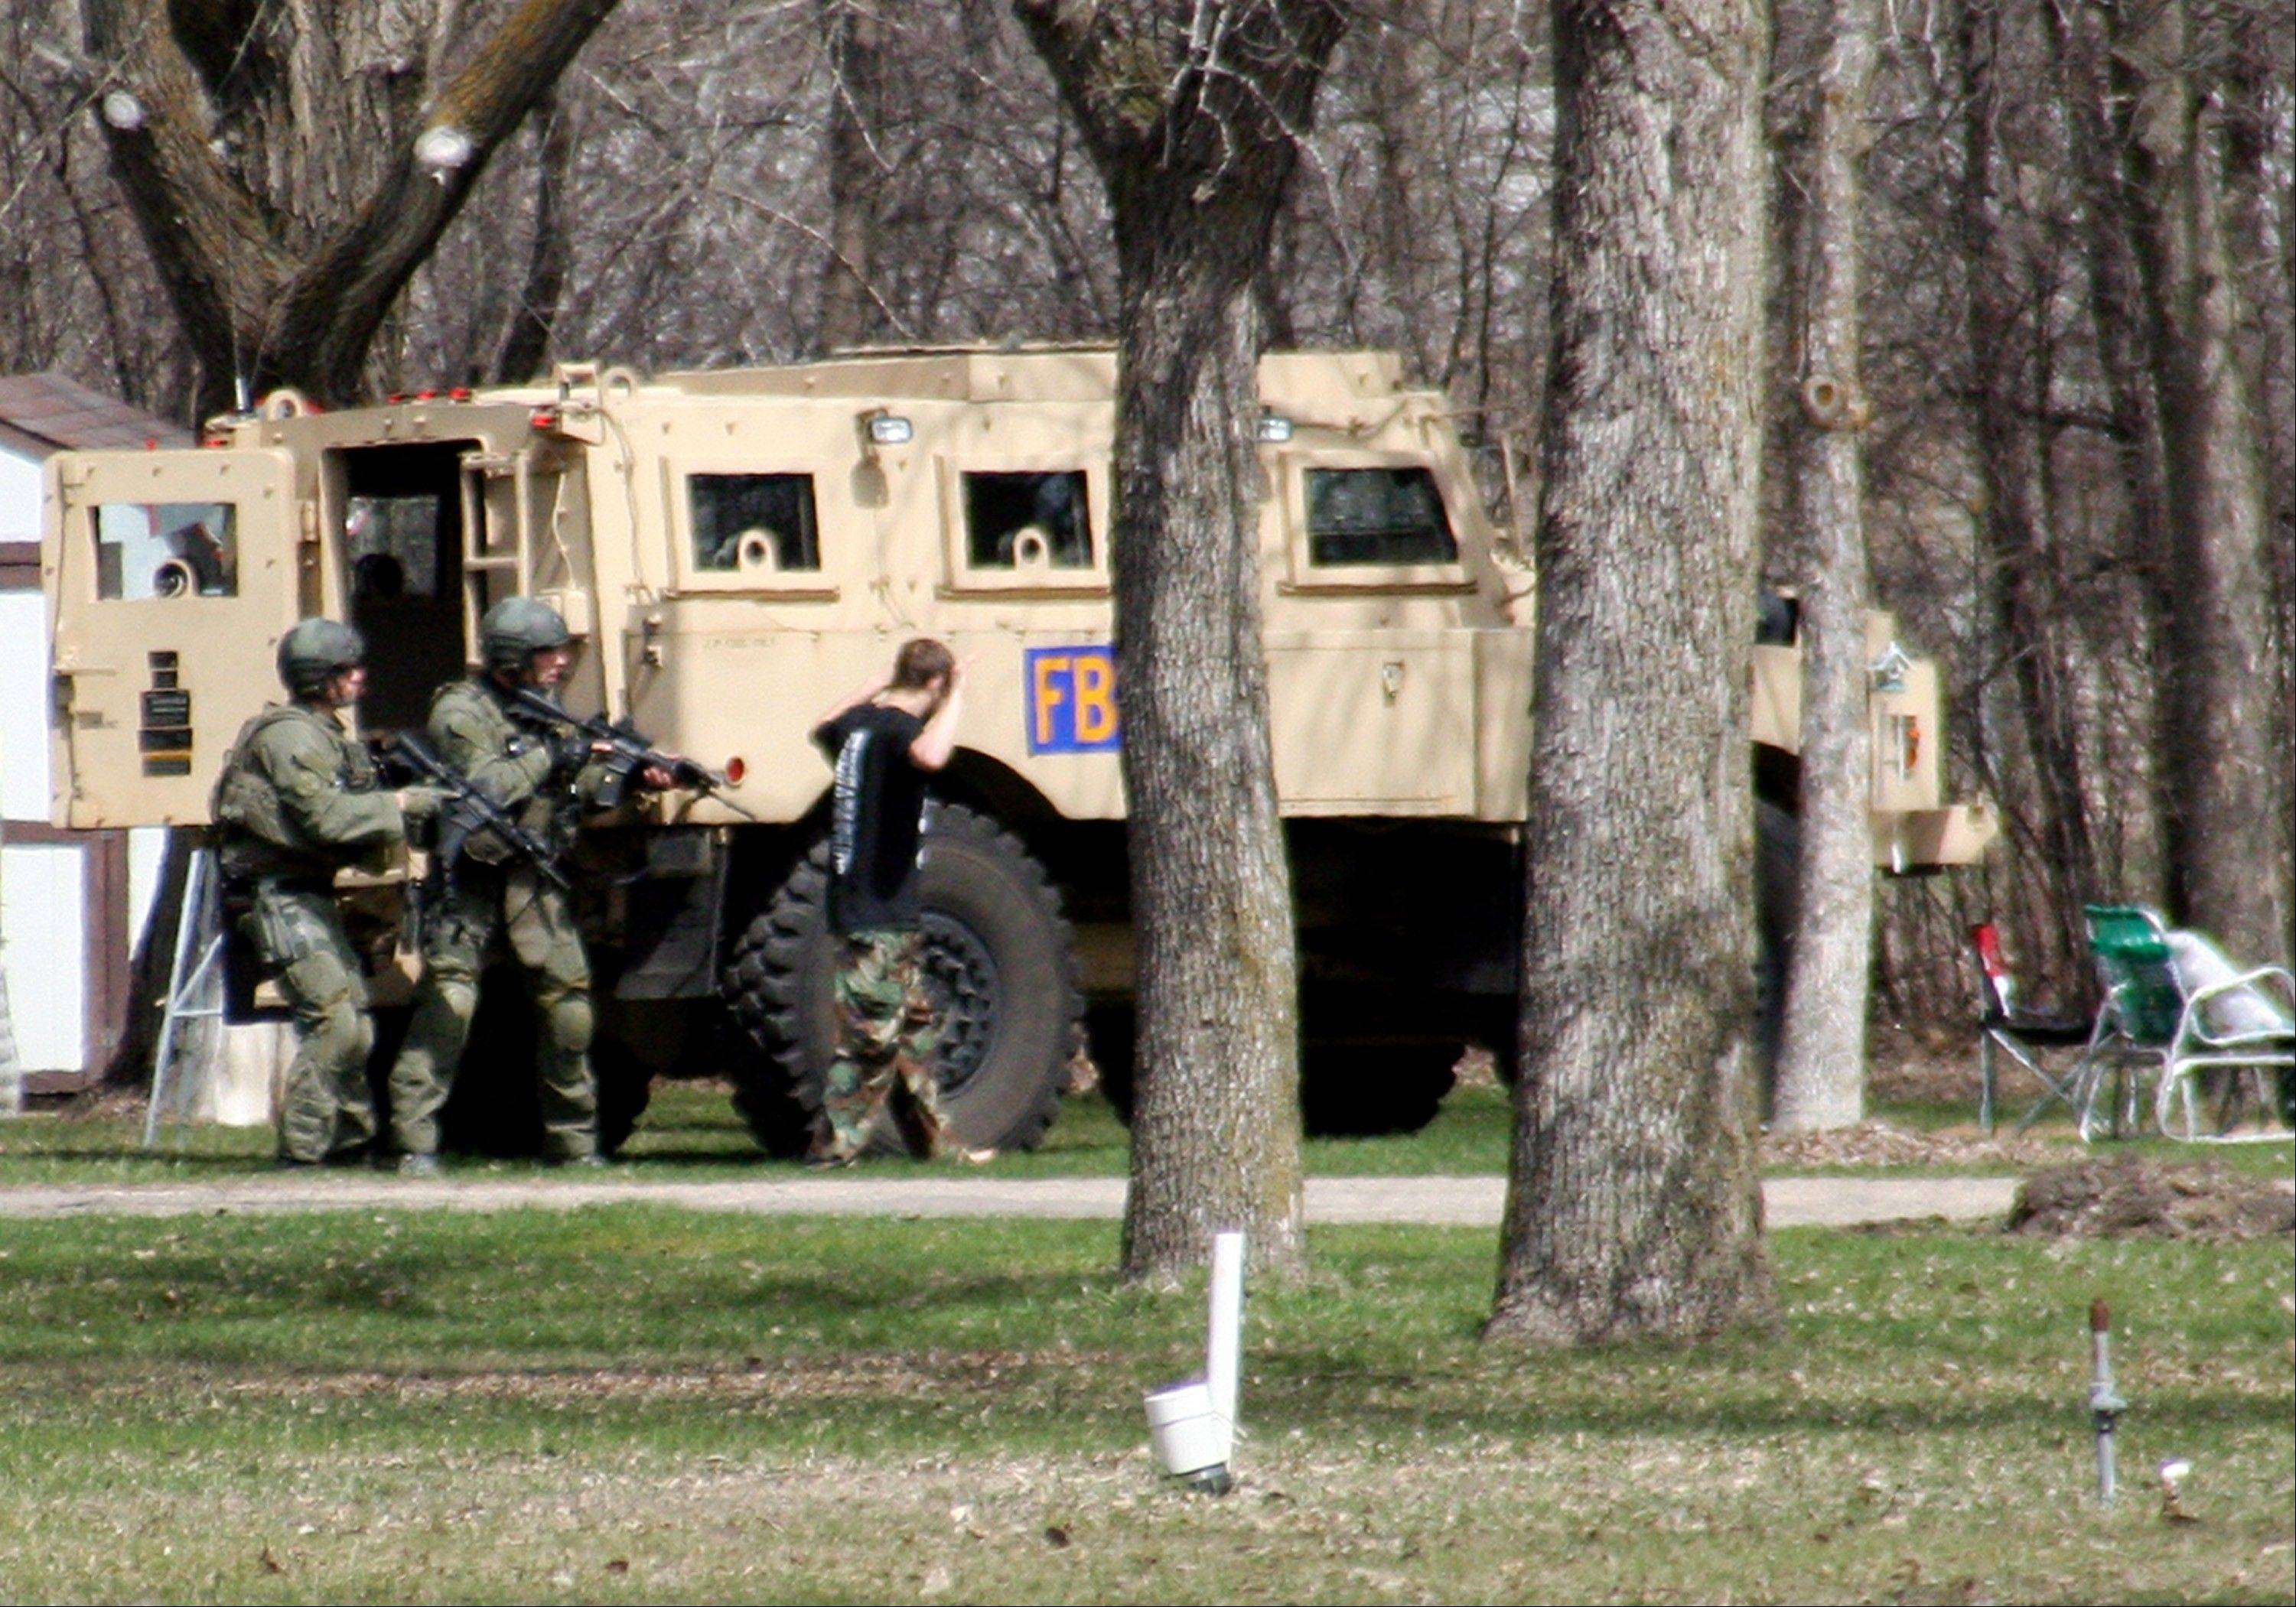 This May 3 photo shows authorities with Buford Rogers, right, during a raid on a mobile home in Montevideo, Minn. Authorities said Monday that Rogers was arrested, charged with one count of being a felon in possession of a firearm, and that the agency believes is disrupted a potential terror attack after a search of the home turned up Molotov cocktails, suspected pipe bombs and firearms.